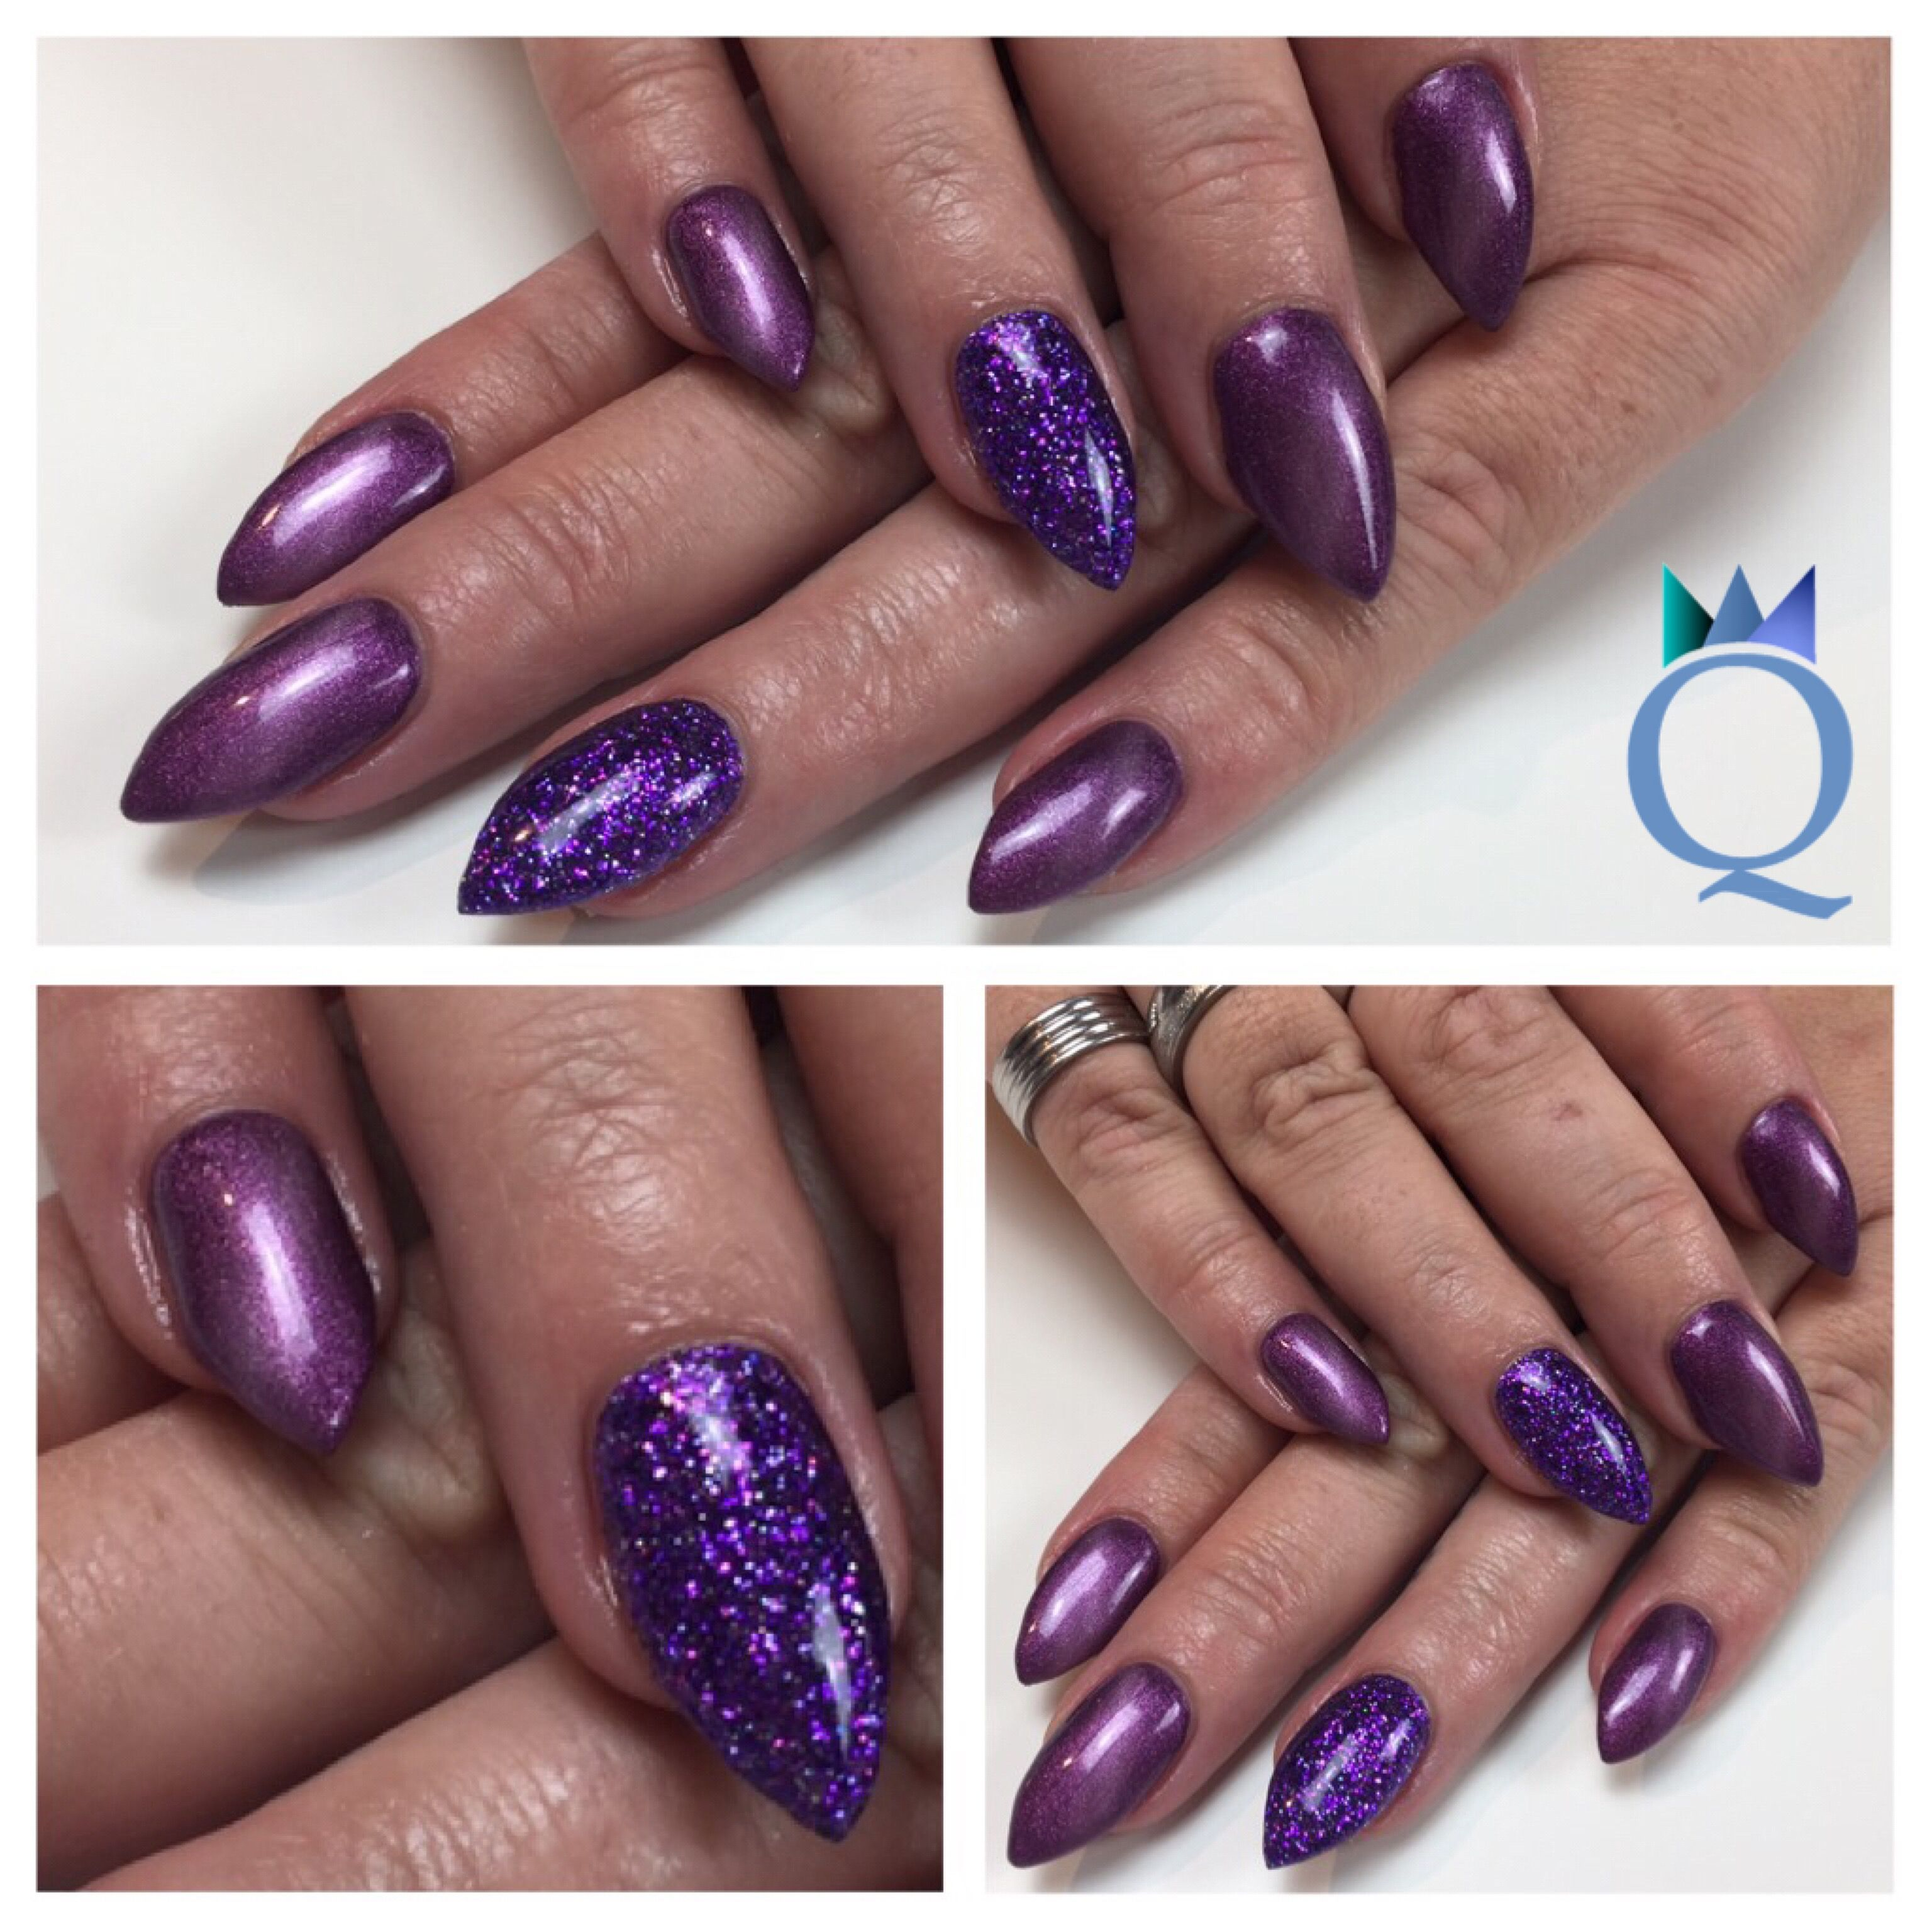 Babystilettos Gelnails Nails Purple Glitter Cateye Akyado